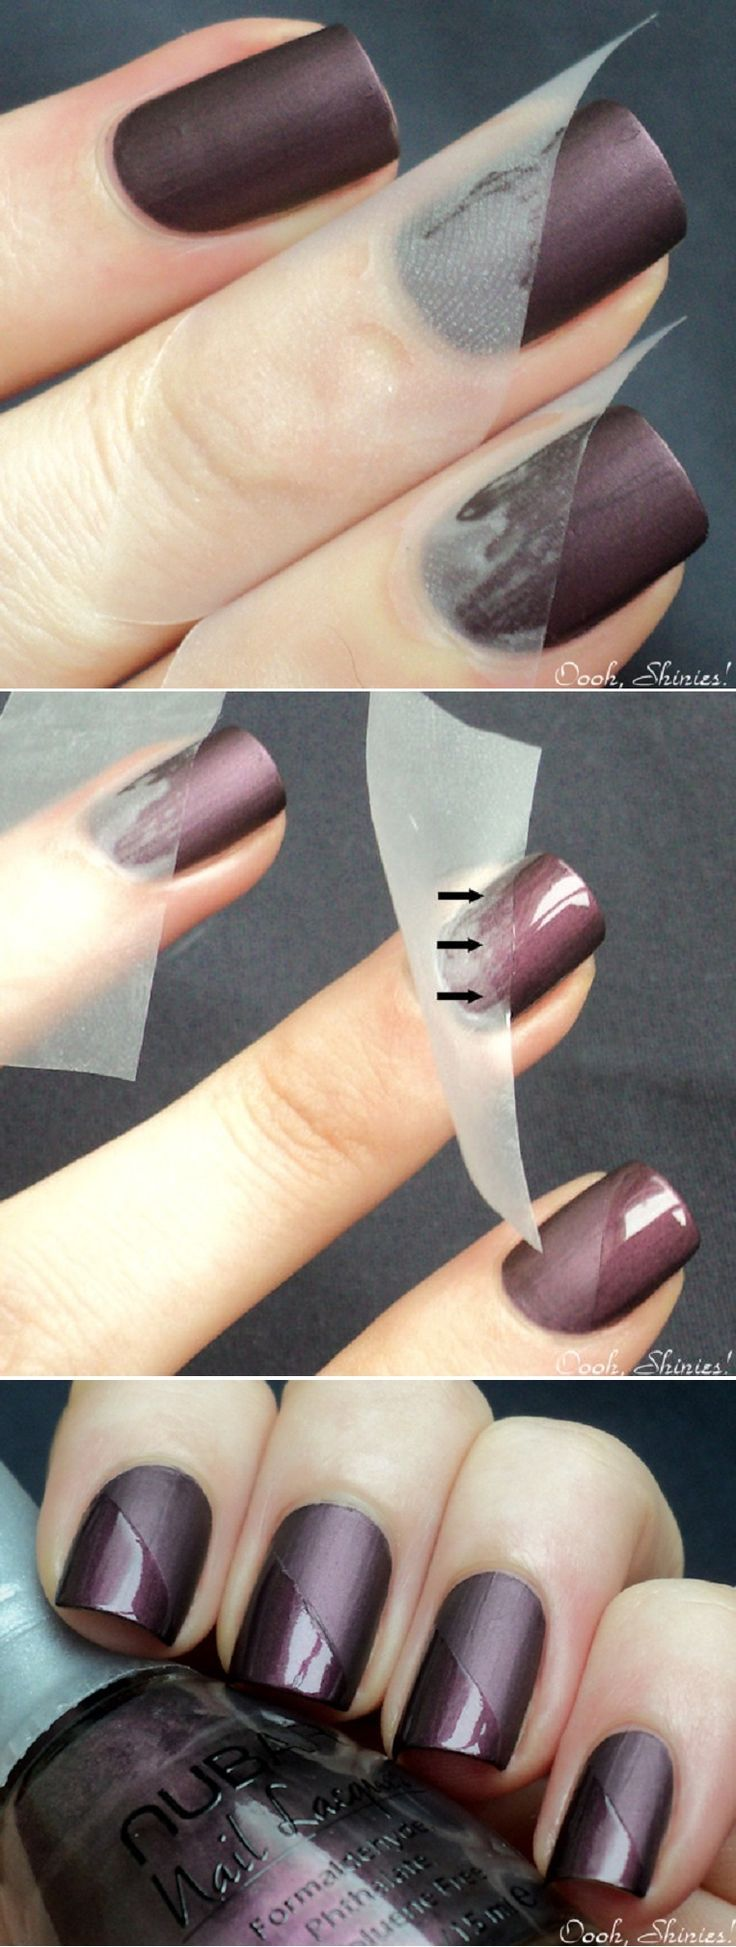 Taped Mani Tutorial                                                                                                                                                                                 More